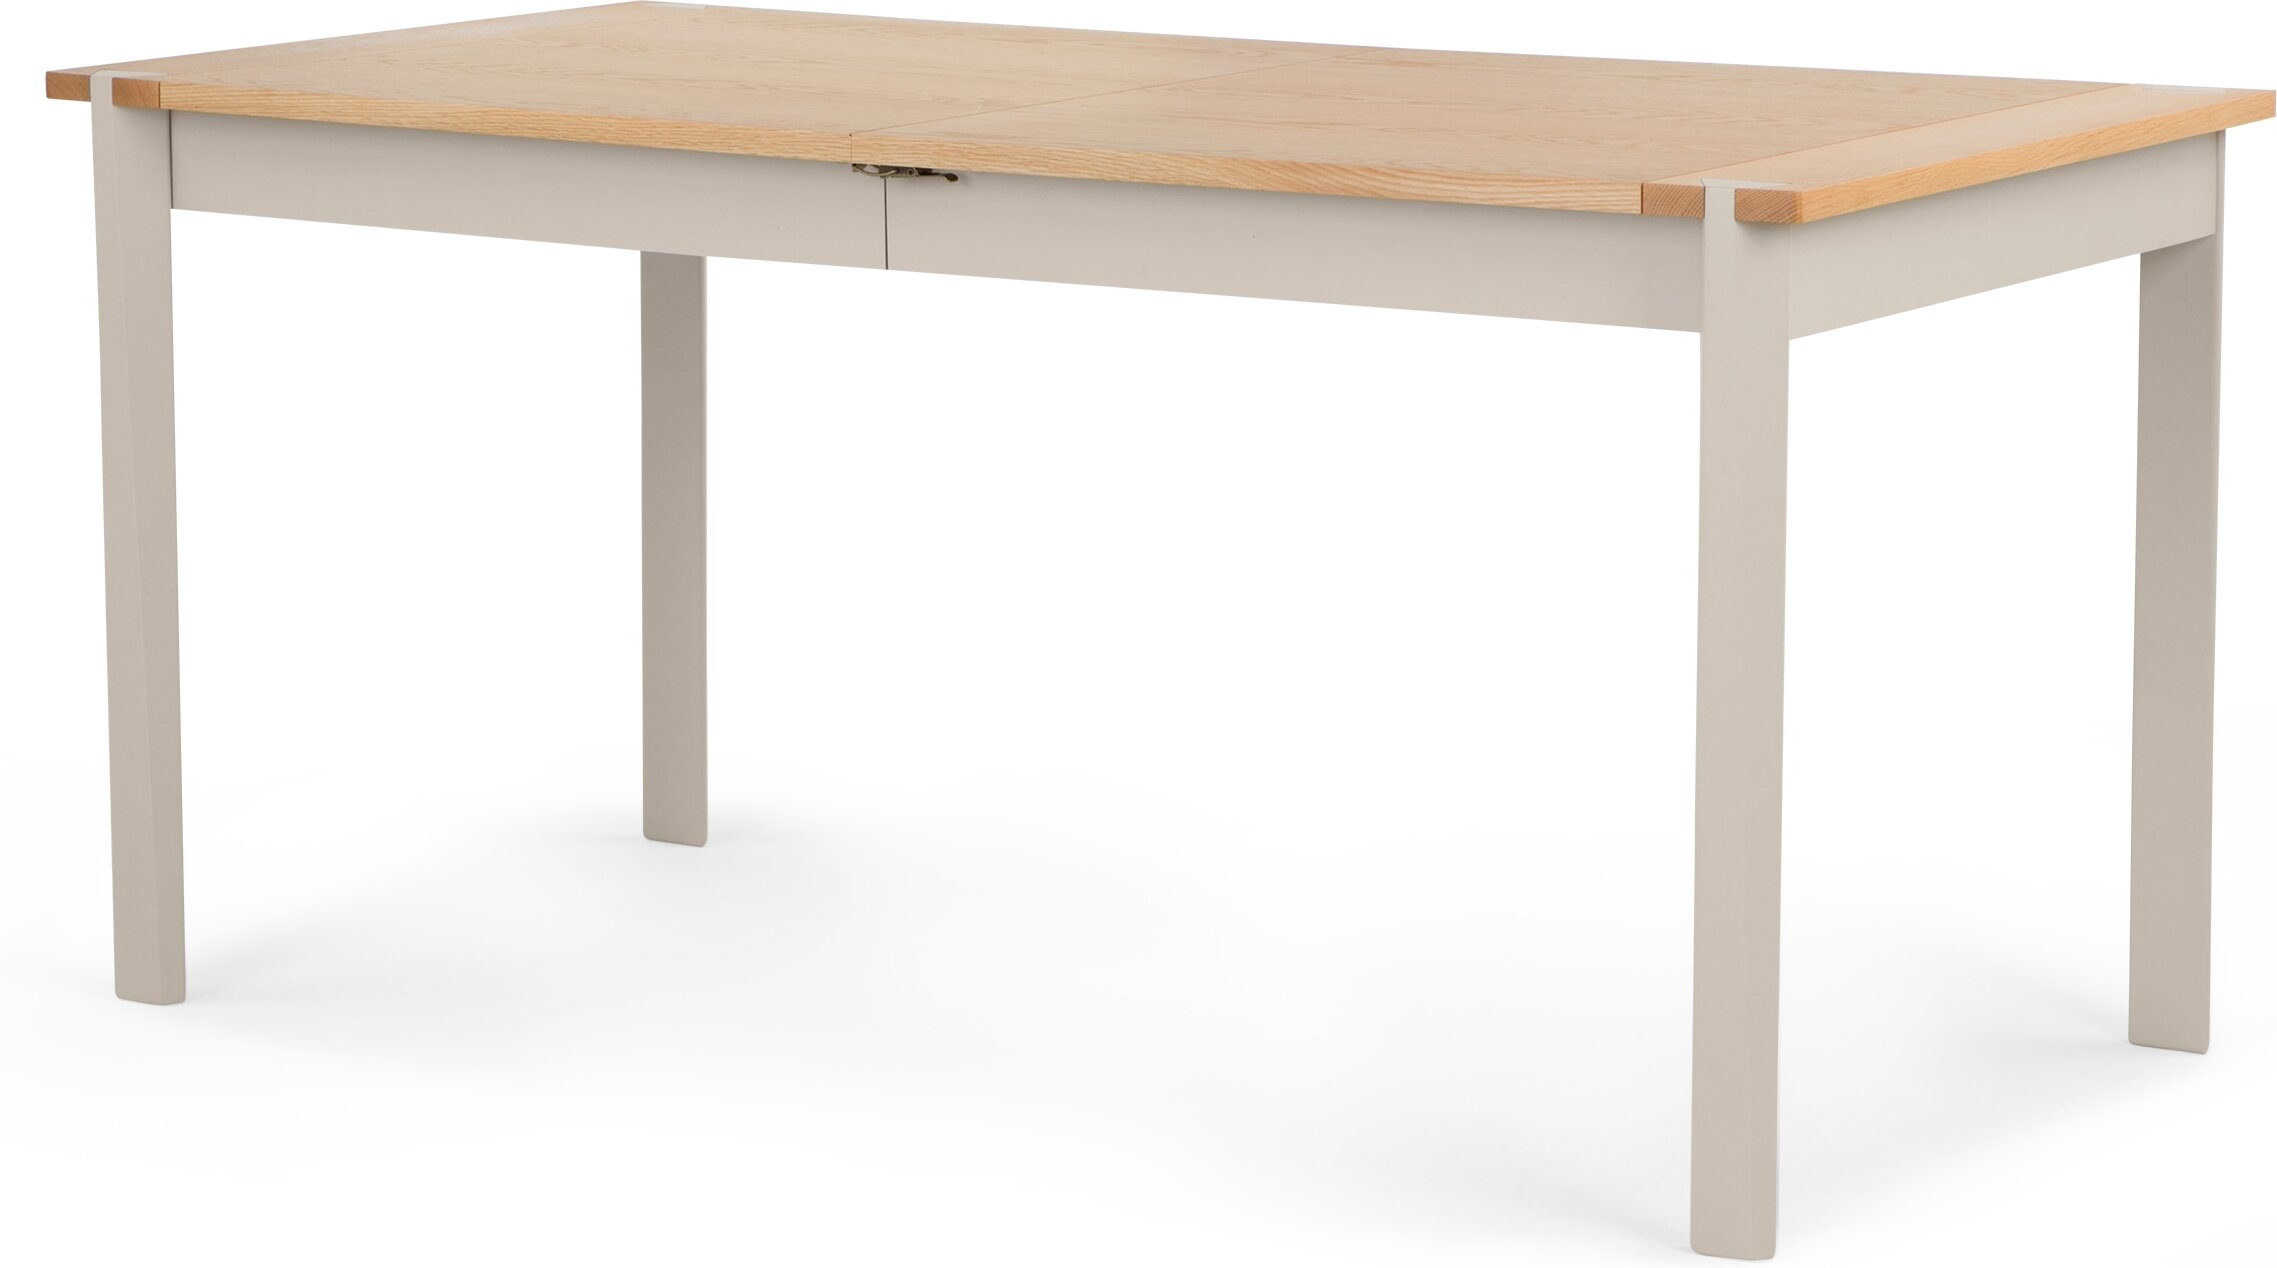 Shepperton Extending Dining Table, Oak and Stone Grey